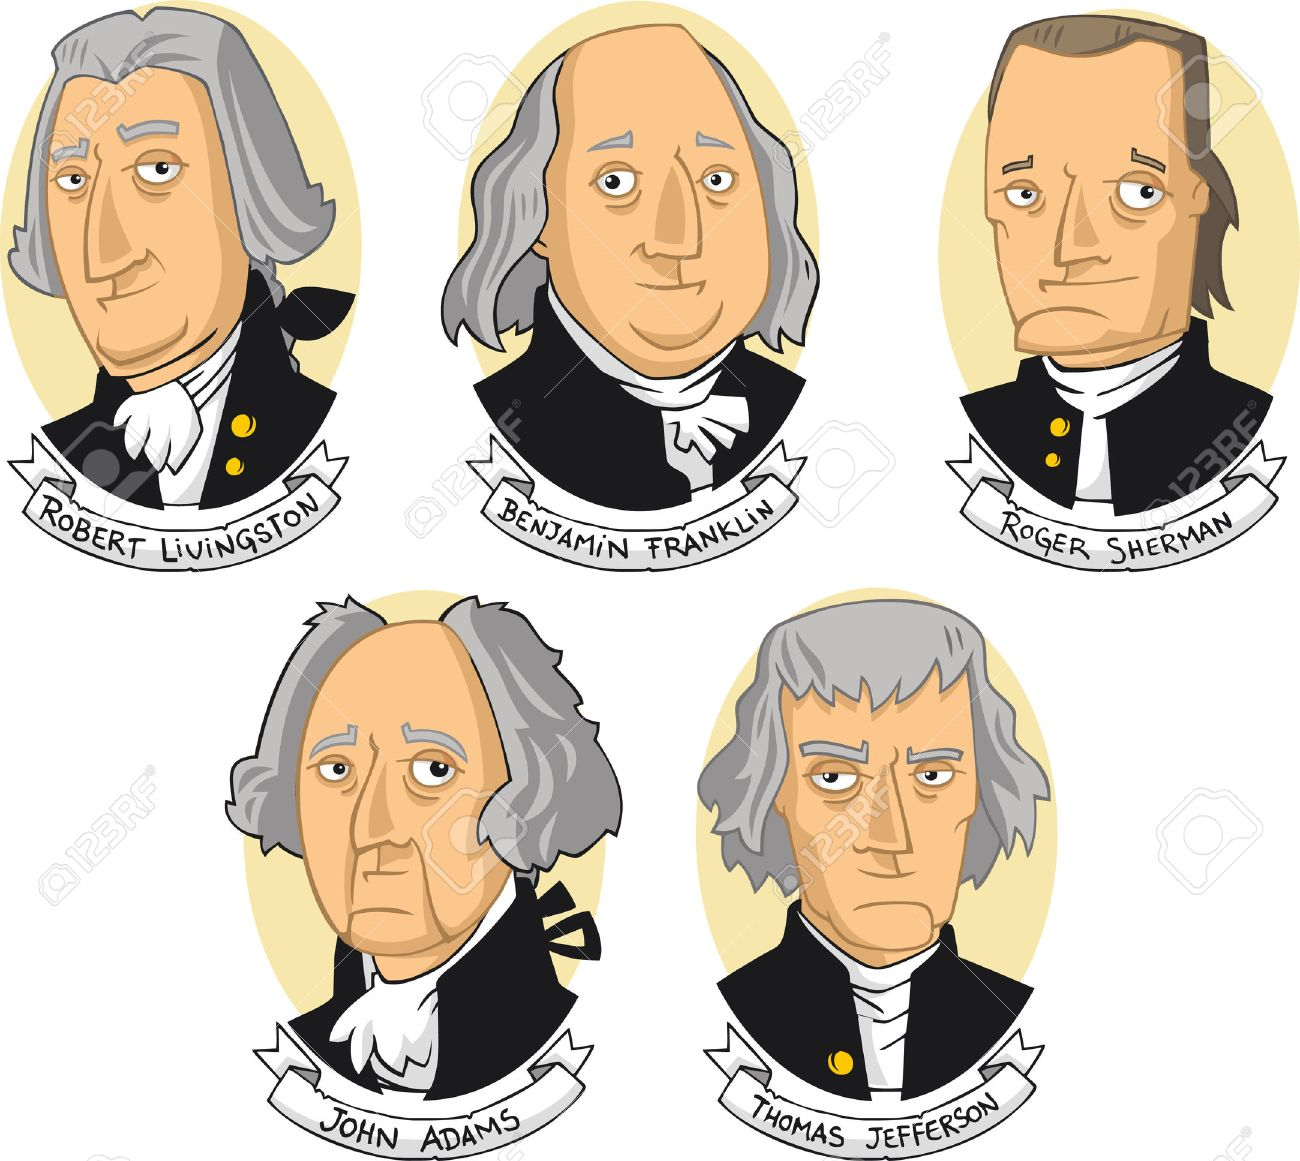 Founding fathers clipart 2 » Clipart Station.